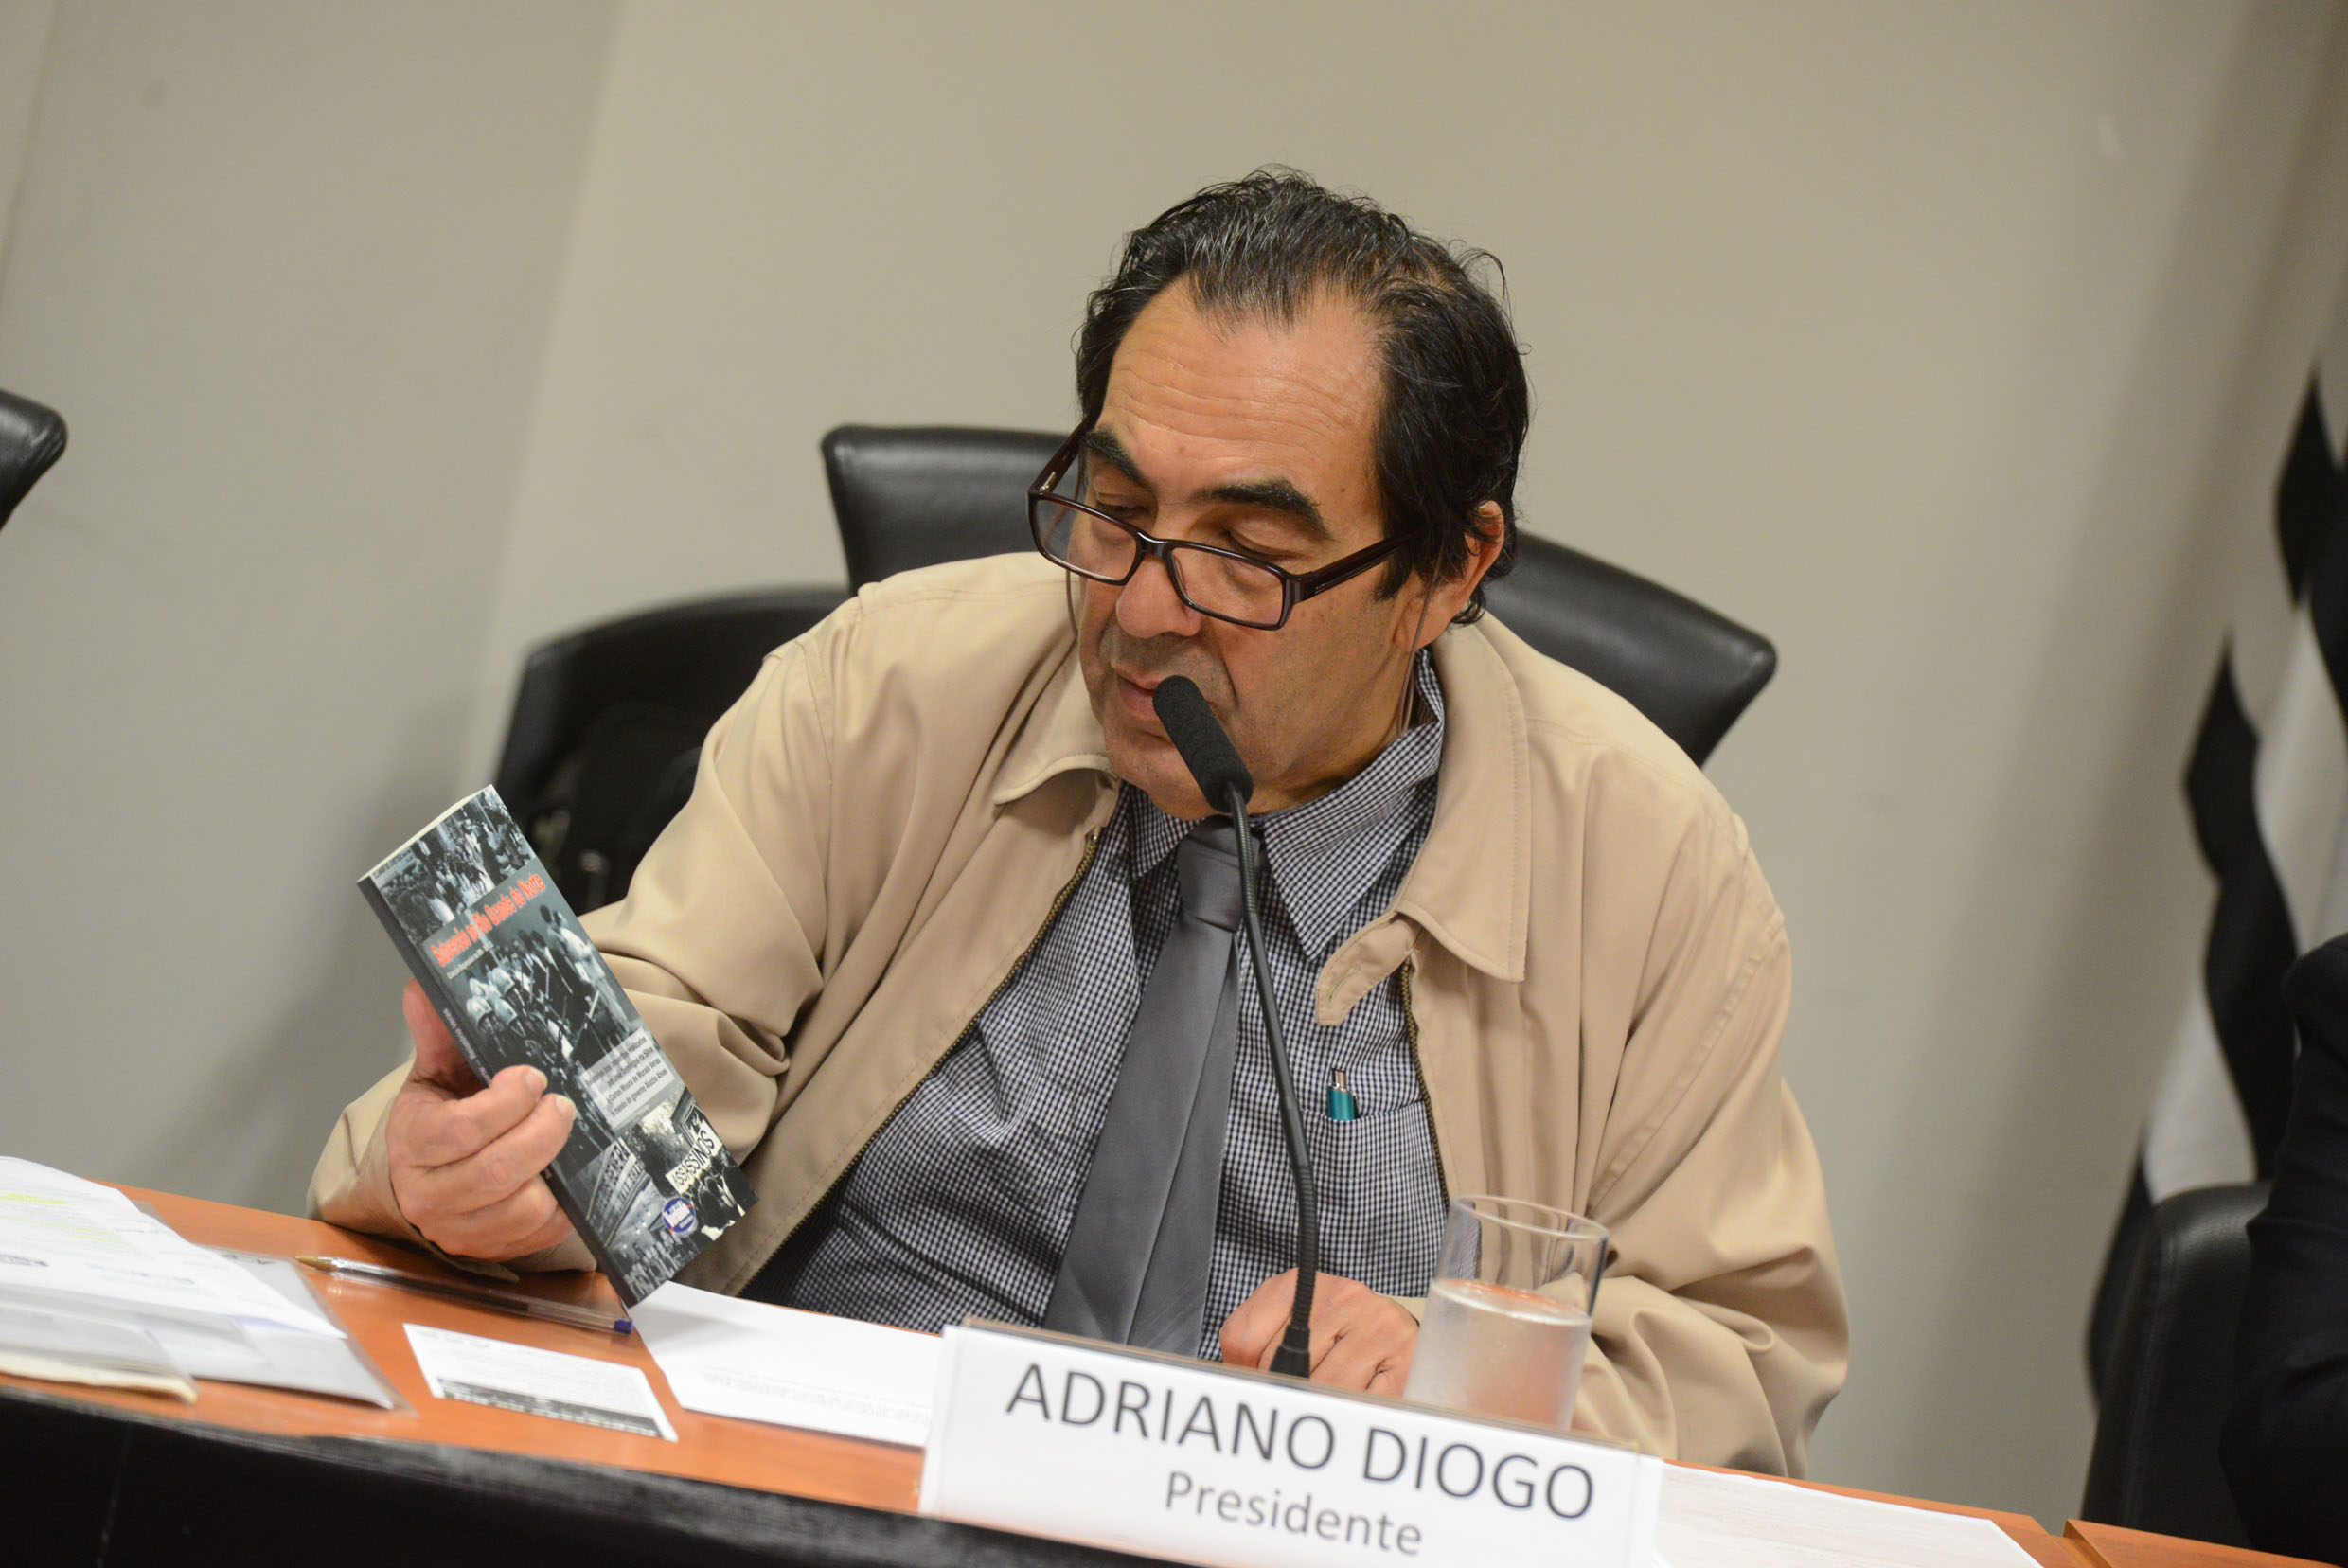 Adriano Diogo <a style='float:right' href='https://www3.al.sp.gov.br/repositorio/noticia/N-12-2013/fg156936.jpg' target=_blank><img src='/_img/material-file-download-white.png' width='14px' alt='Clique para baixar a imagem'></a>